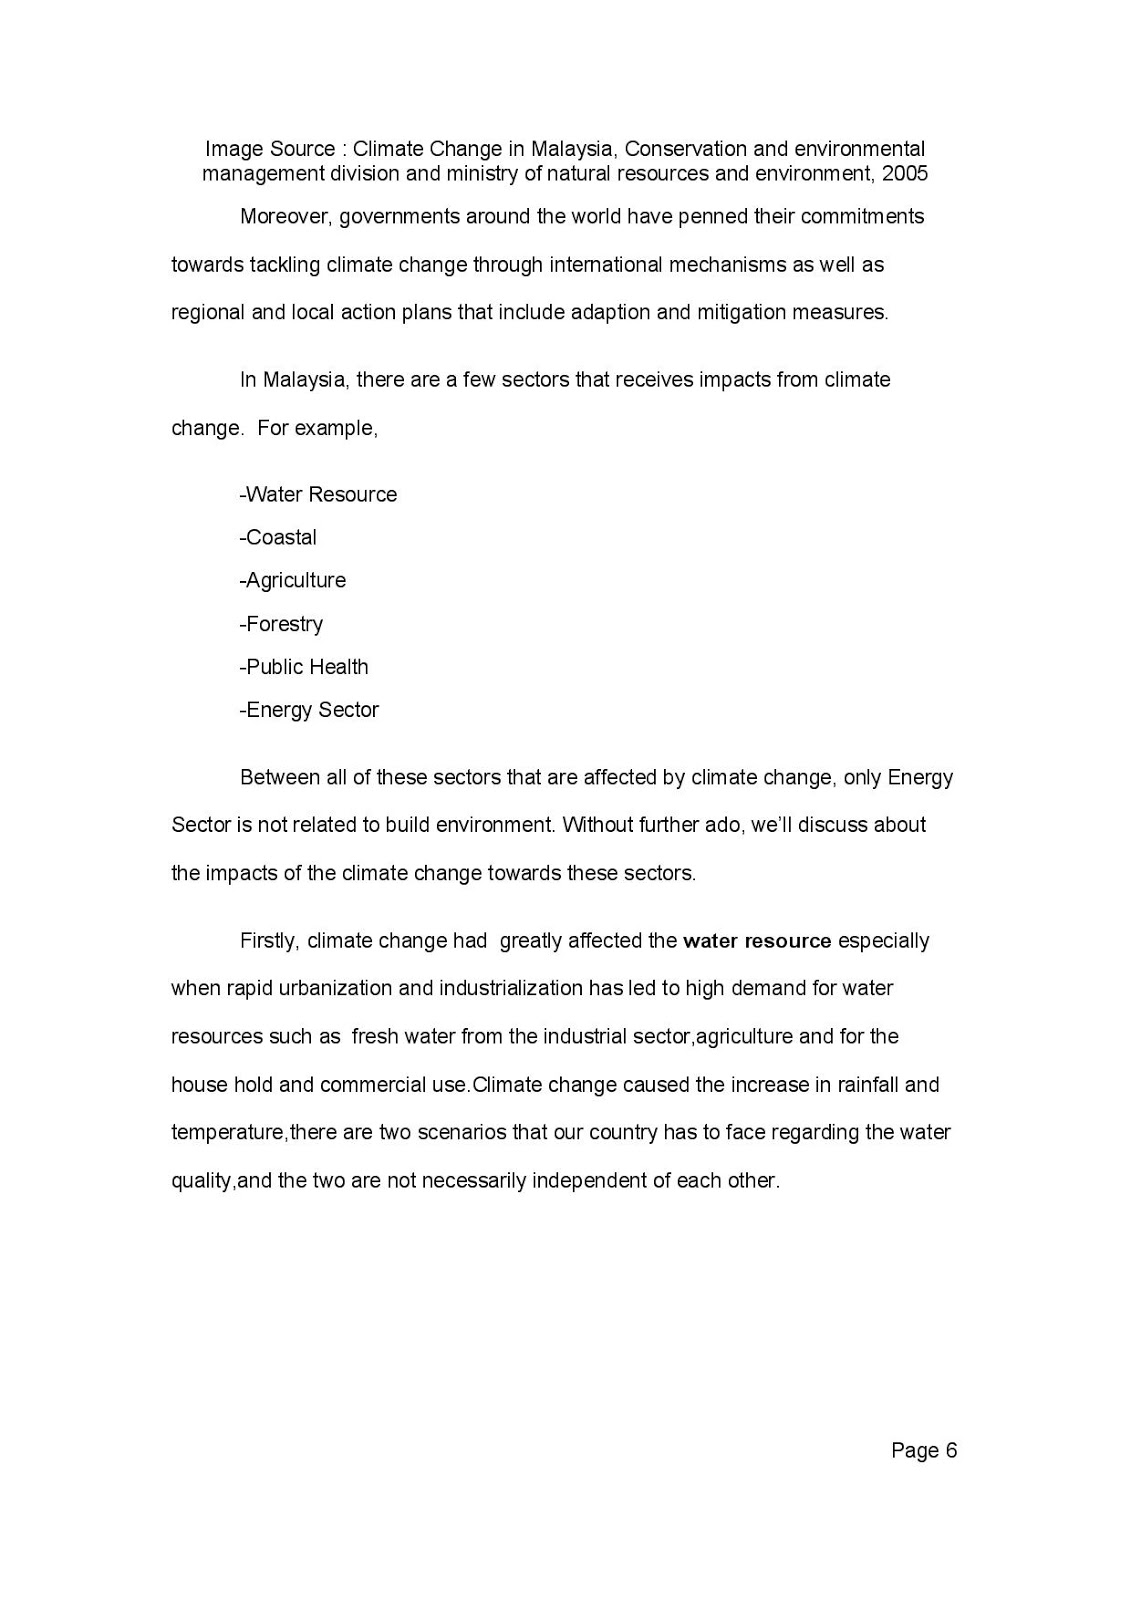 essay about environmental issues environmental issues essay  wong yan ce`architecture`e portfolio environmental sustainable design 1 nature us reflective essay